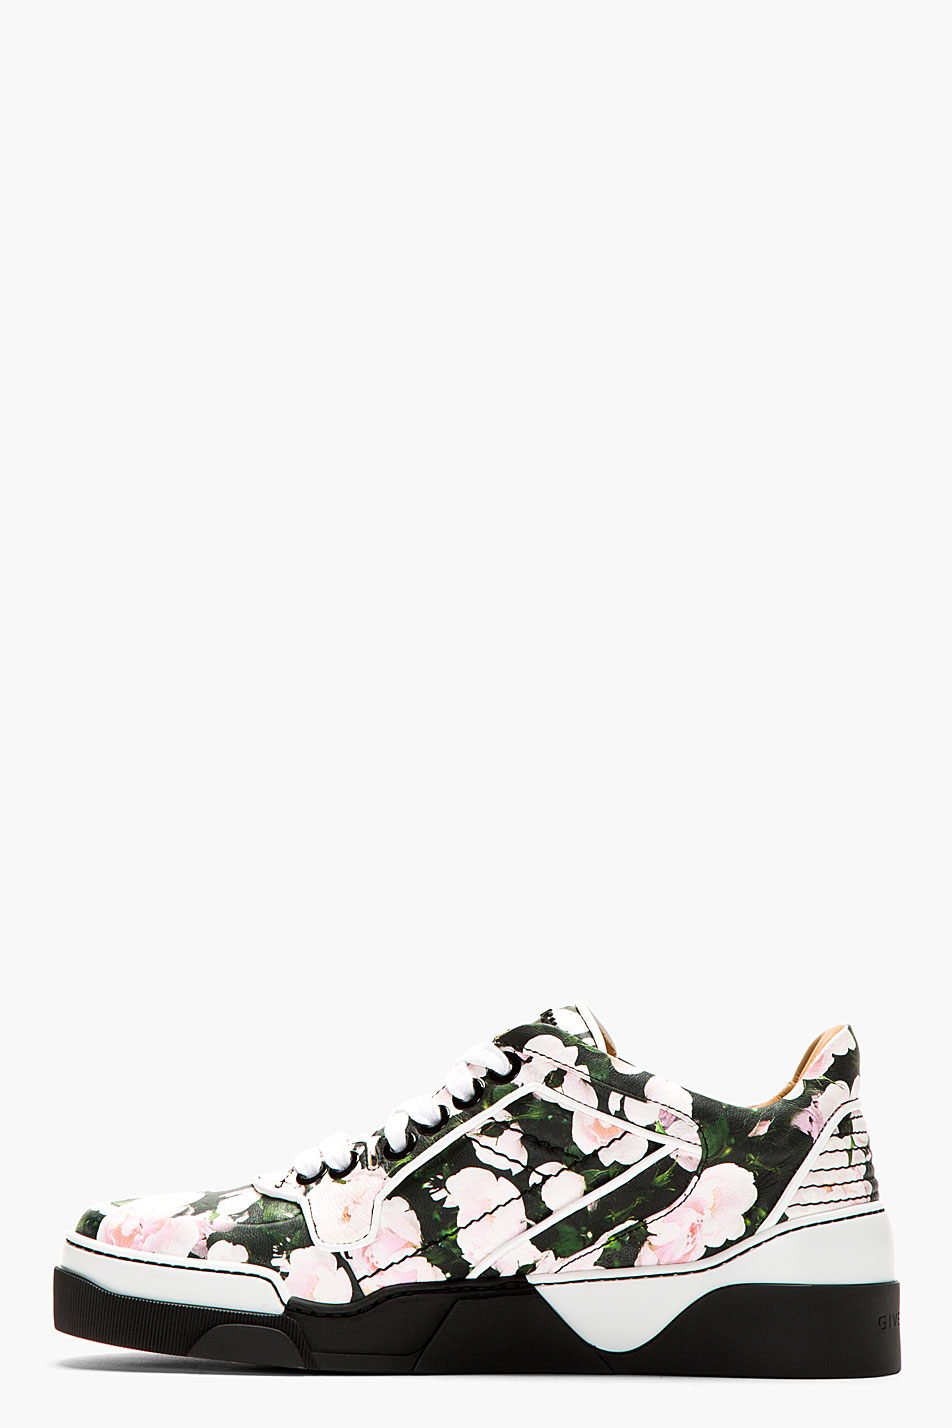 Lyst Givenchy Black And Pink Floral Print Tyson Sneakers In Pink